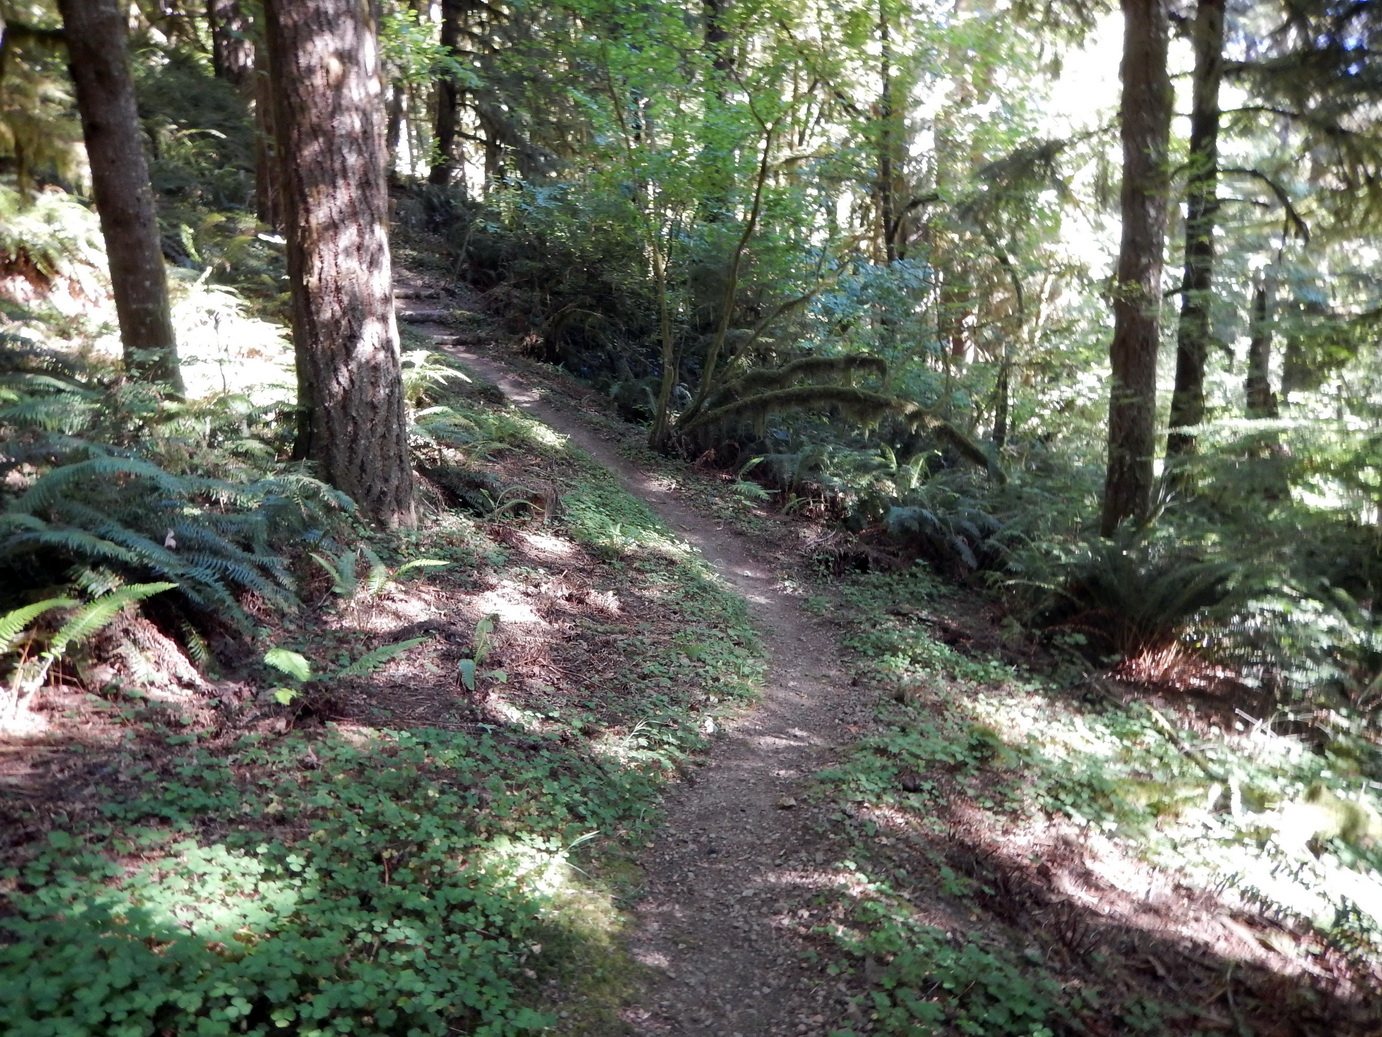 Trees and ferns abound on the Old Growth Ridge Trail